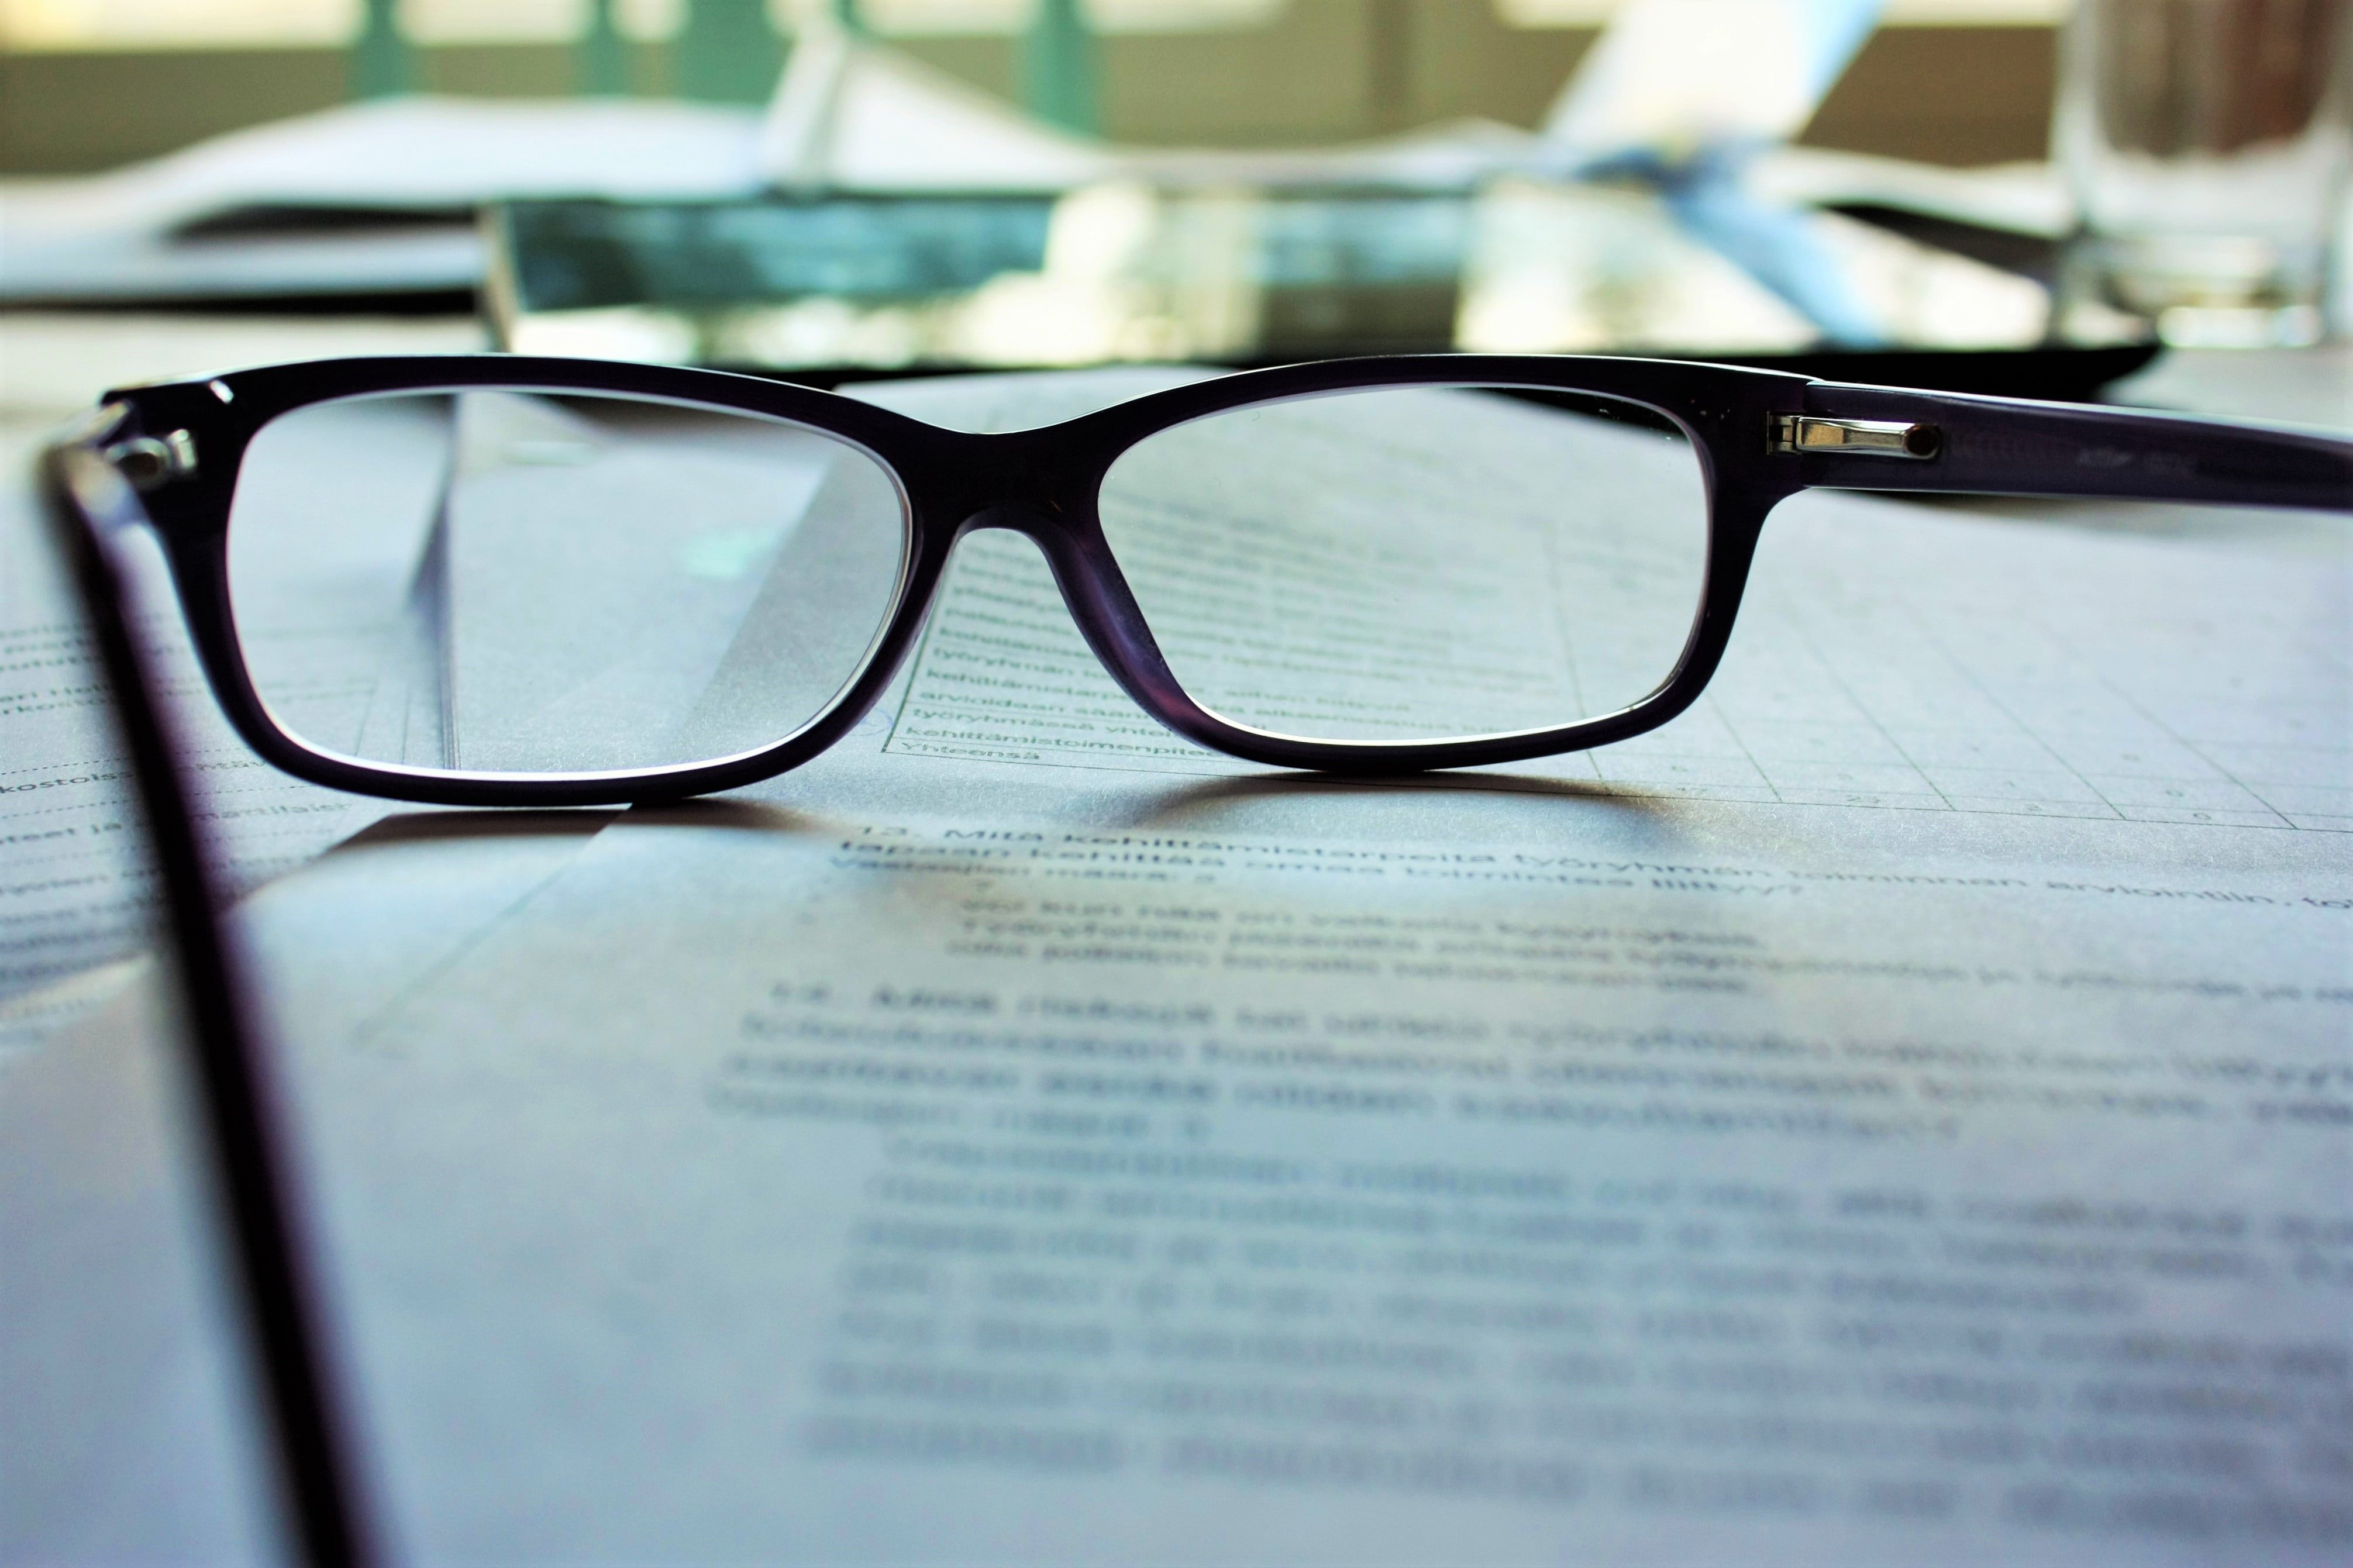 Reading glasses and papers | Source: Unsplash